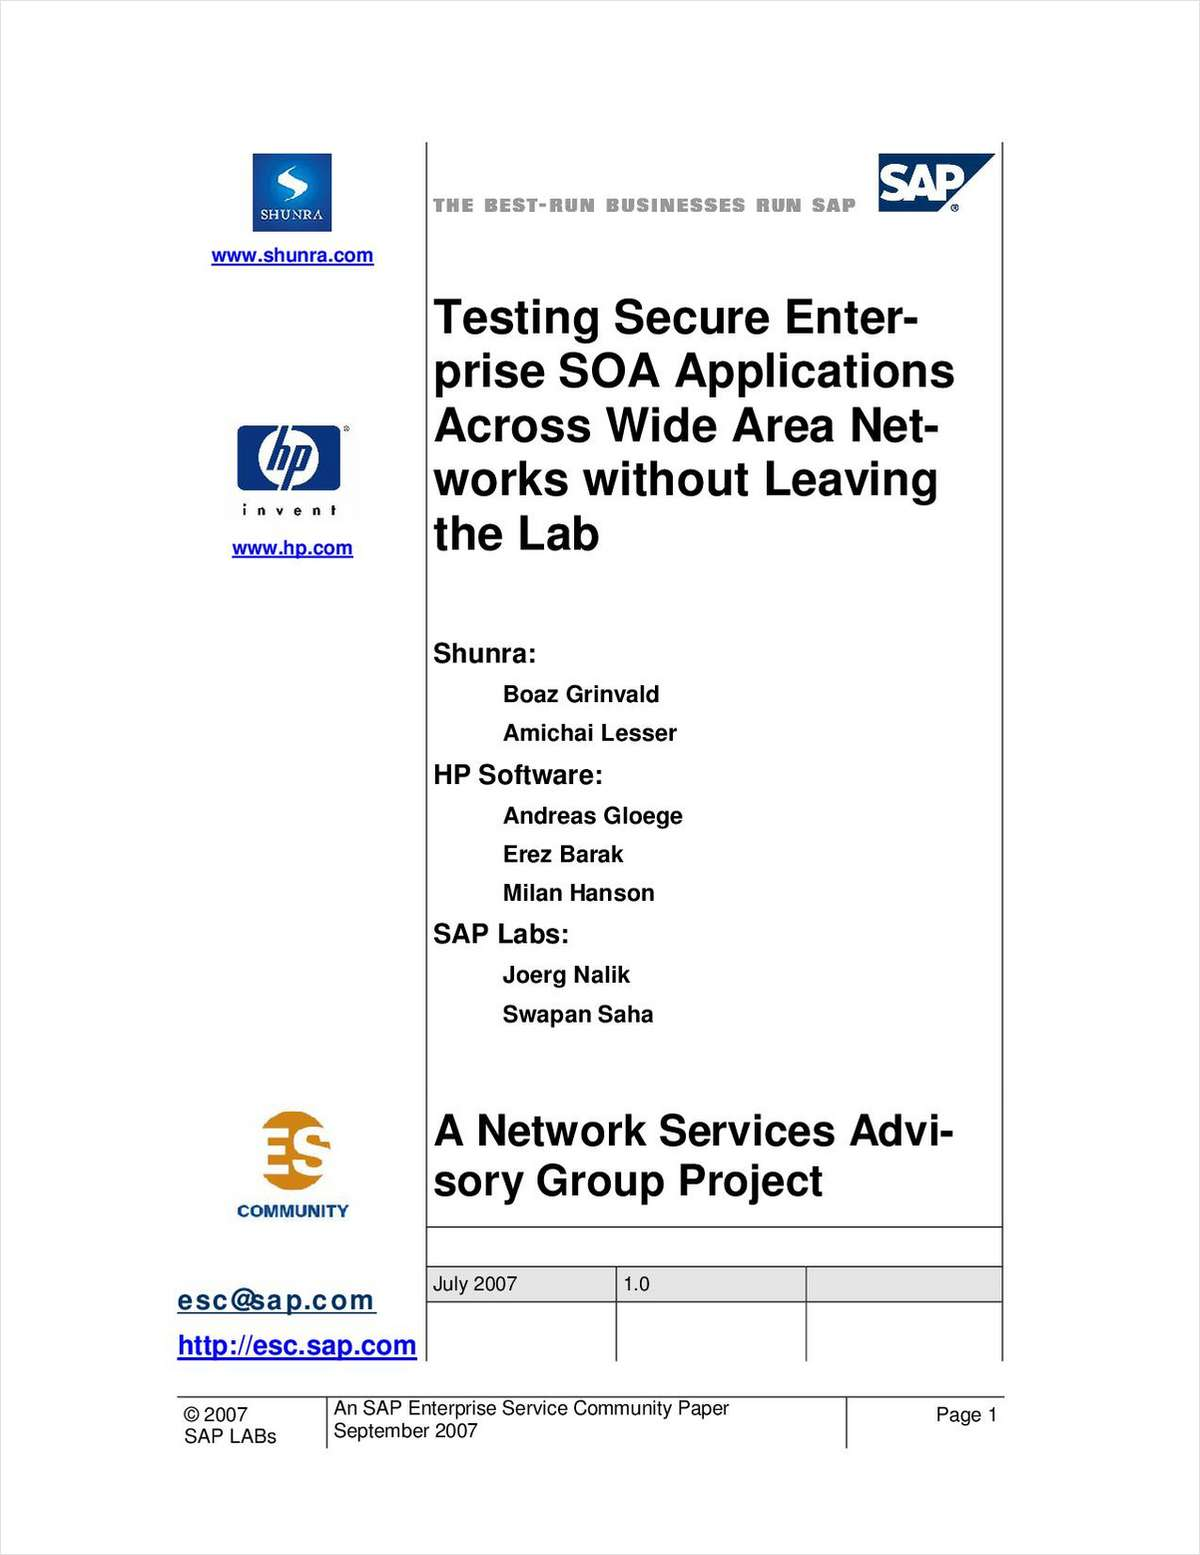 Testing Secure Enterprise SOA Applications Across Wide Area Networks without Leaving the Lab